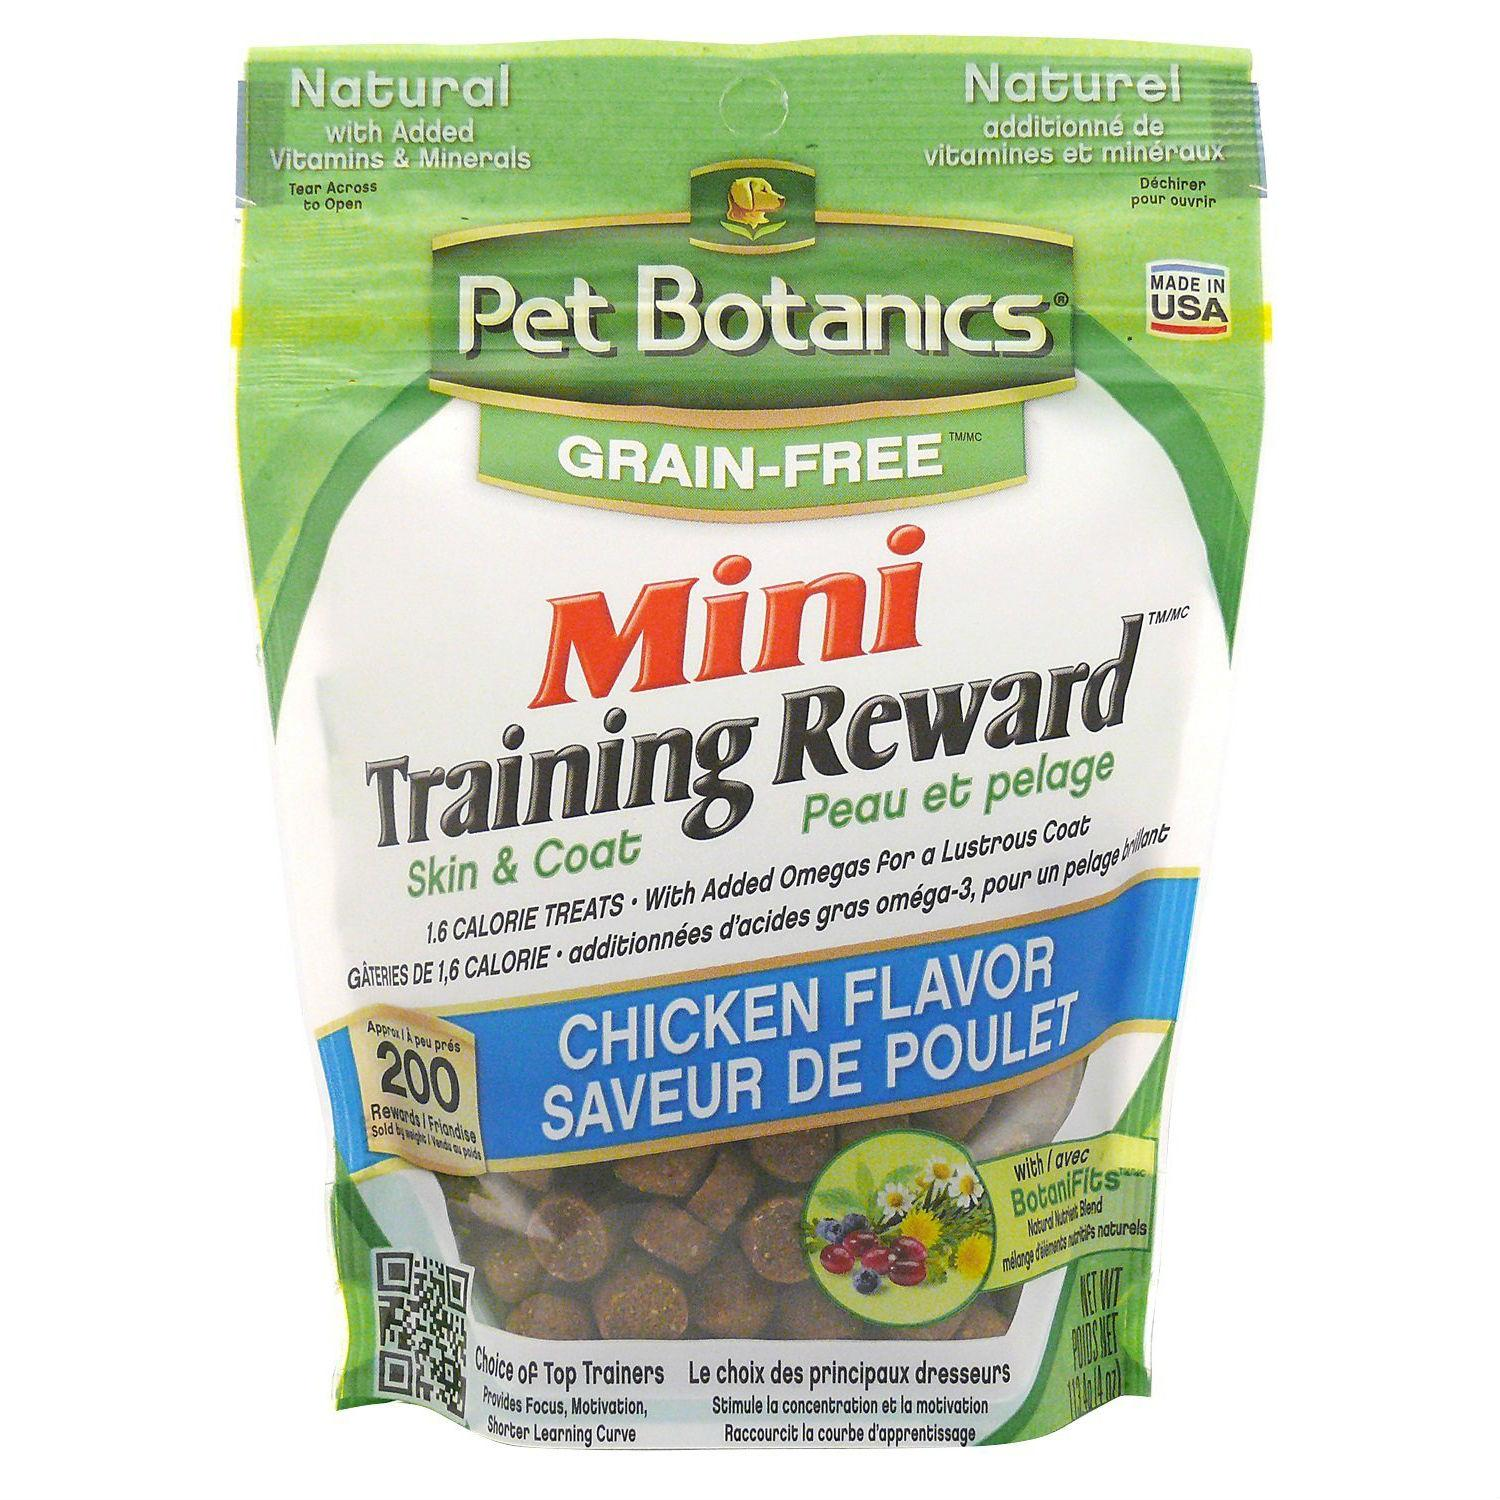 Pet Botanics Mini Training Rewards Grain-Free Dog Treats - Chicken